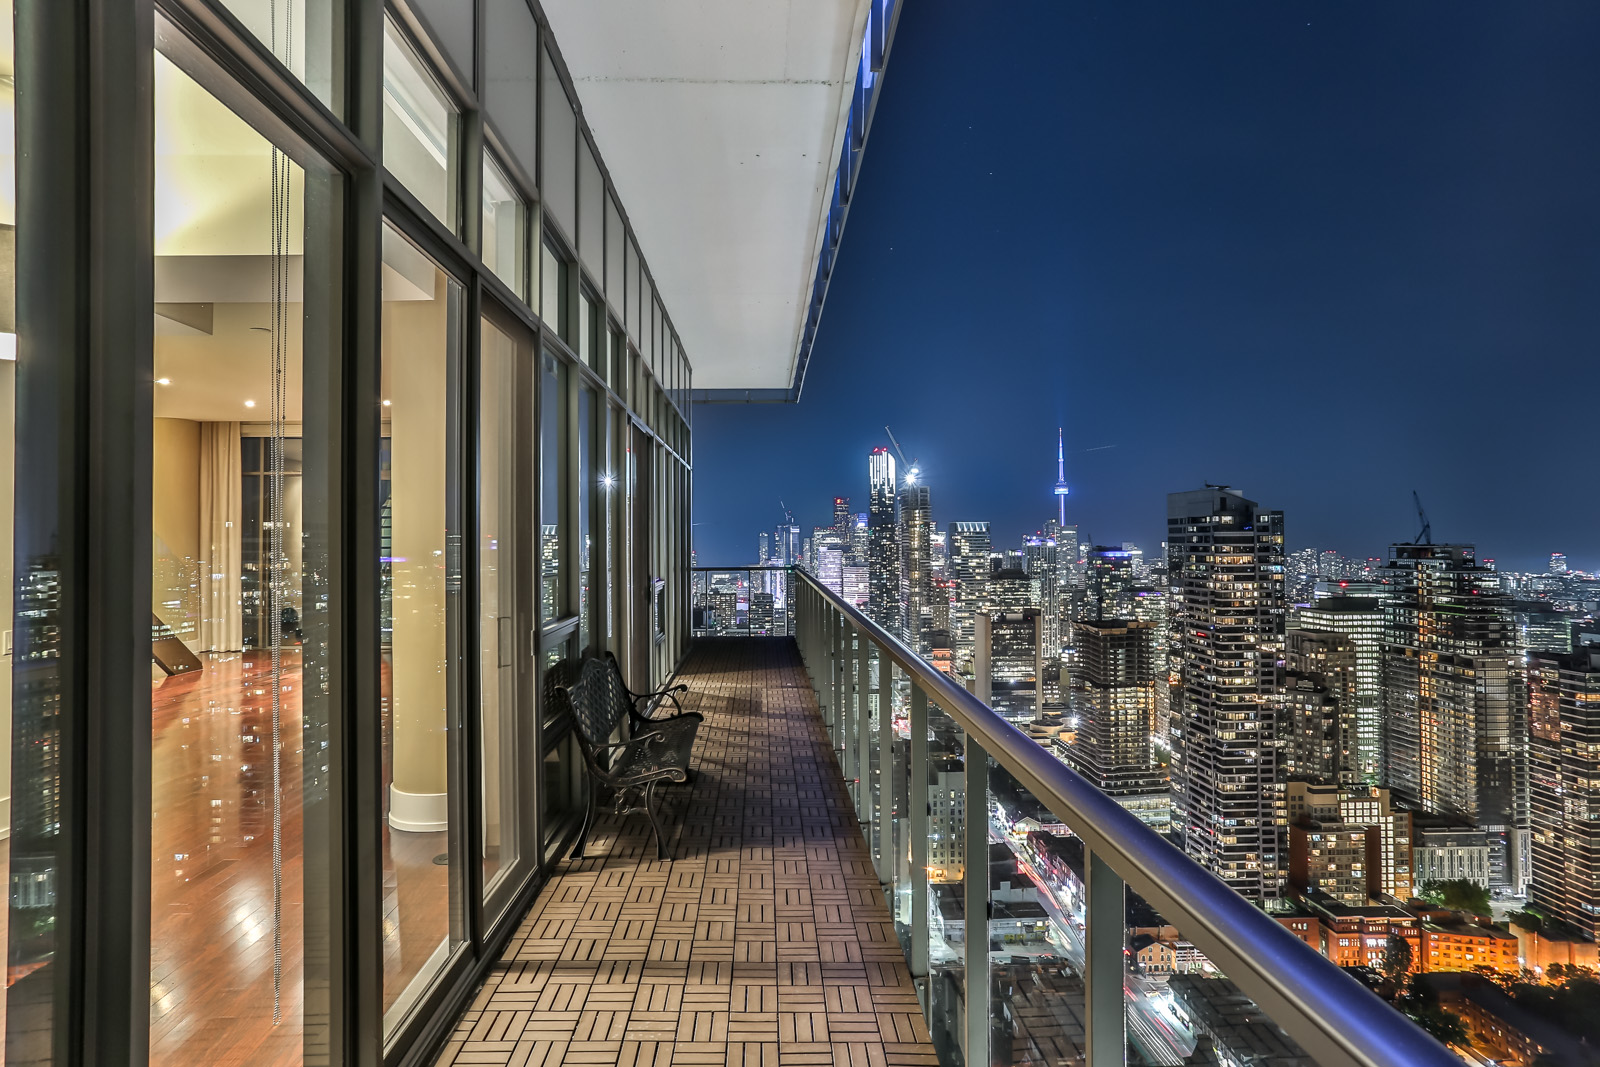 Another exterior shot; this one shows the balcony and Toronto at night.